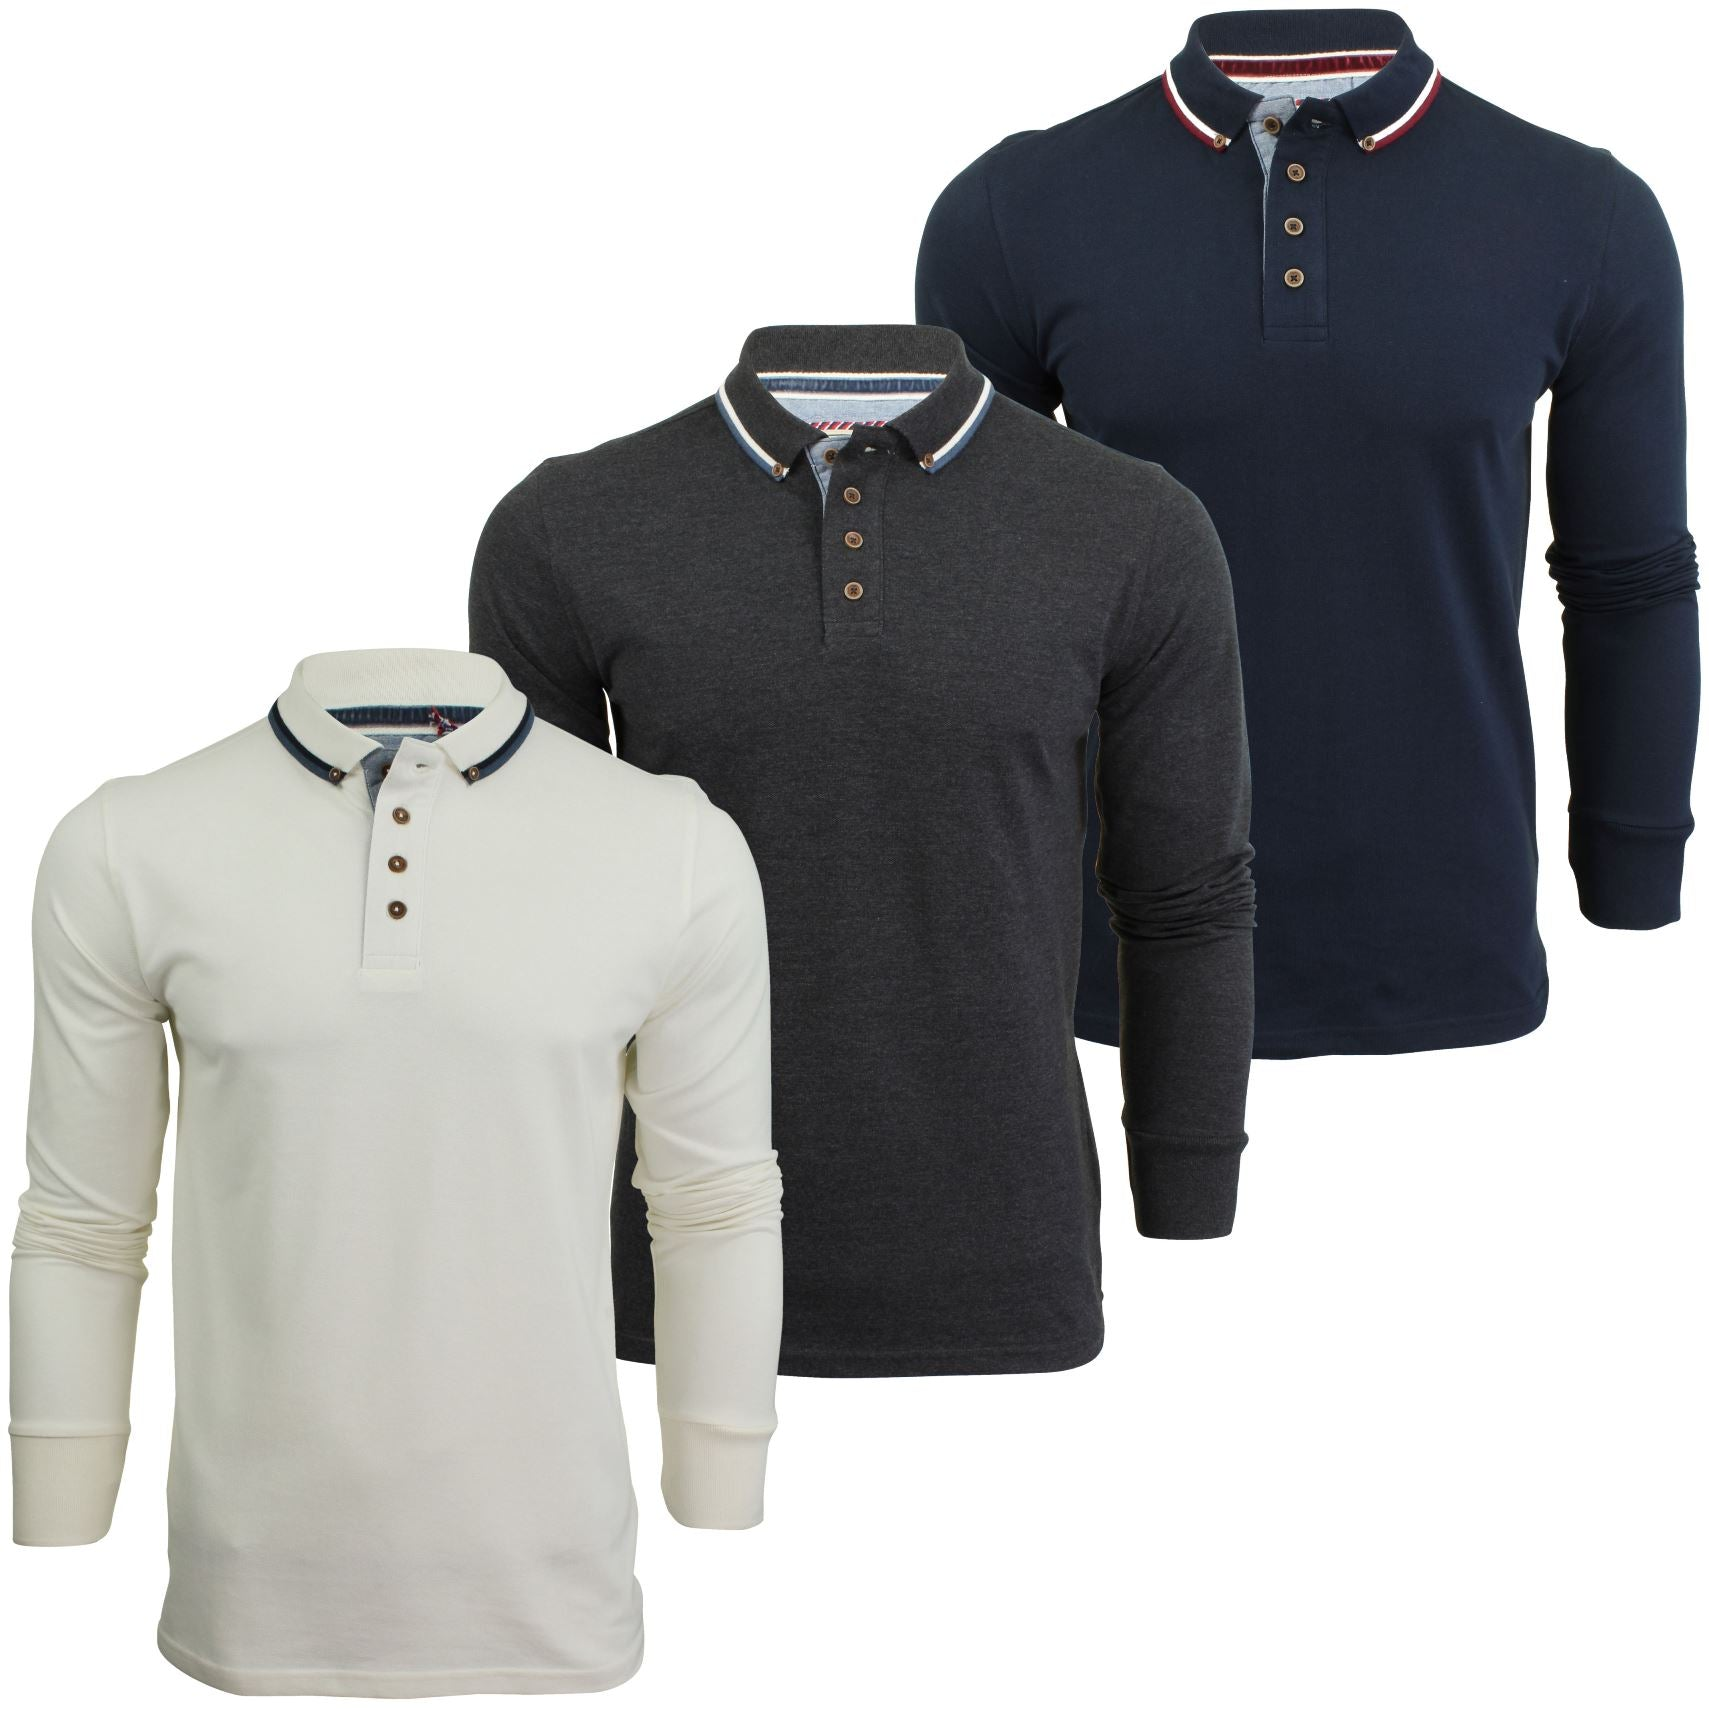 Mens Polo T-Shirt by Brave Soul 'Kennedy' Tipped Collar Long Sleeved-Main Image